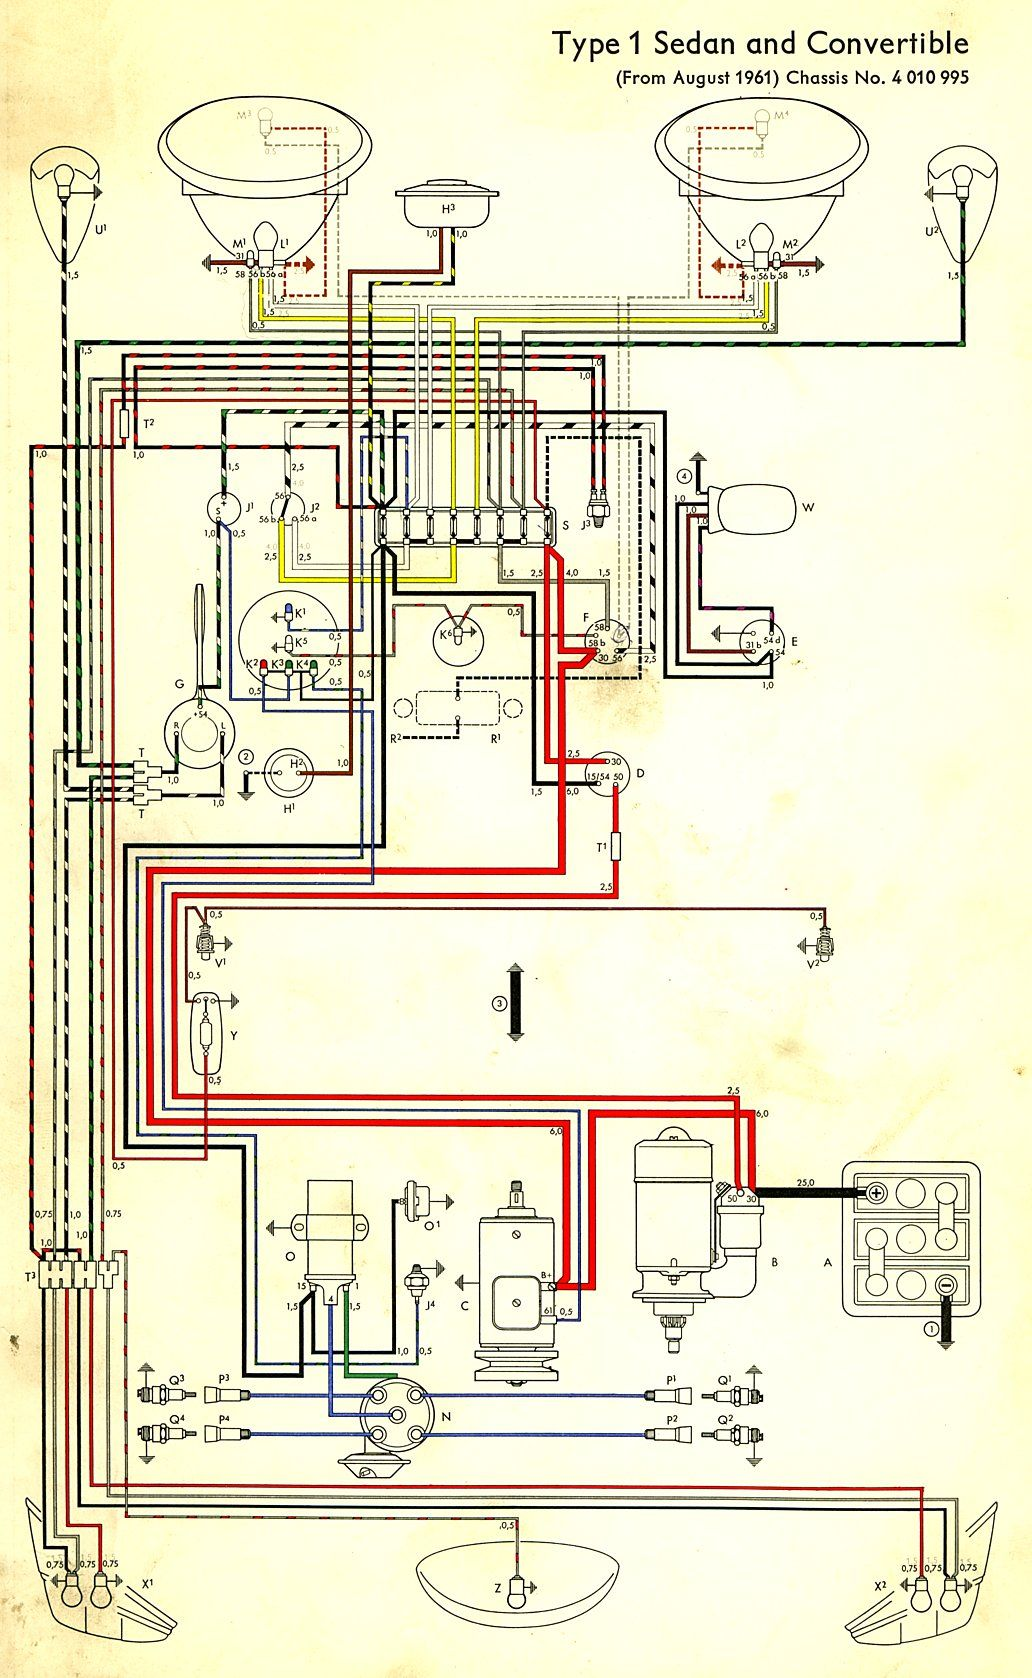 Wiring Diagram In Color 1964 Vw Bug Beetle Convertible The Samba 2001 Fuse Box Battery Fix